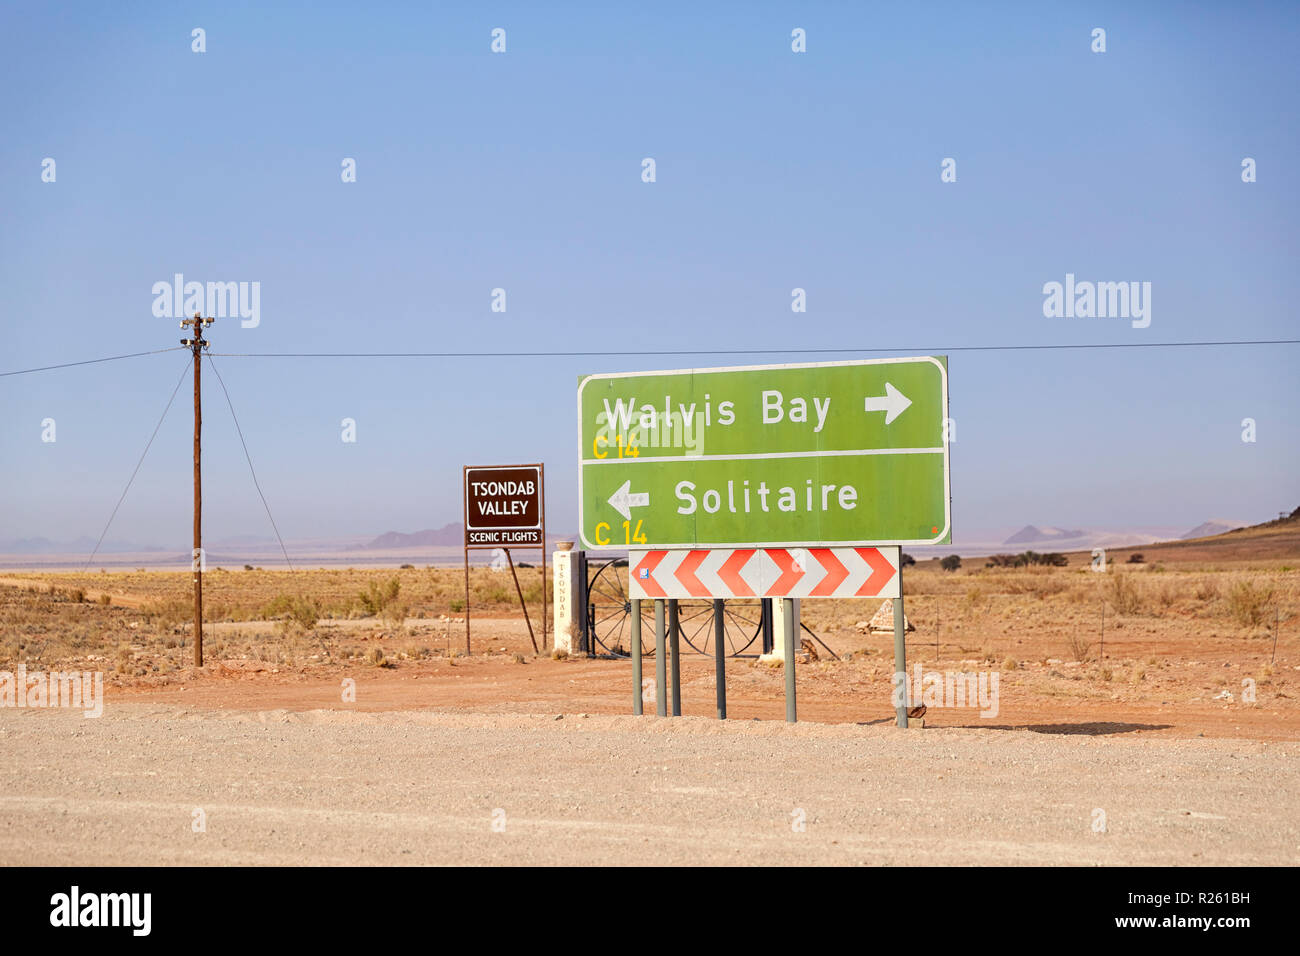 Walvis Bay and Solitaire direction sign on Route C 14  near Walvis Bay in Tsondab Valley in Namibia, Africa - Stock Image